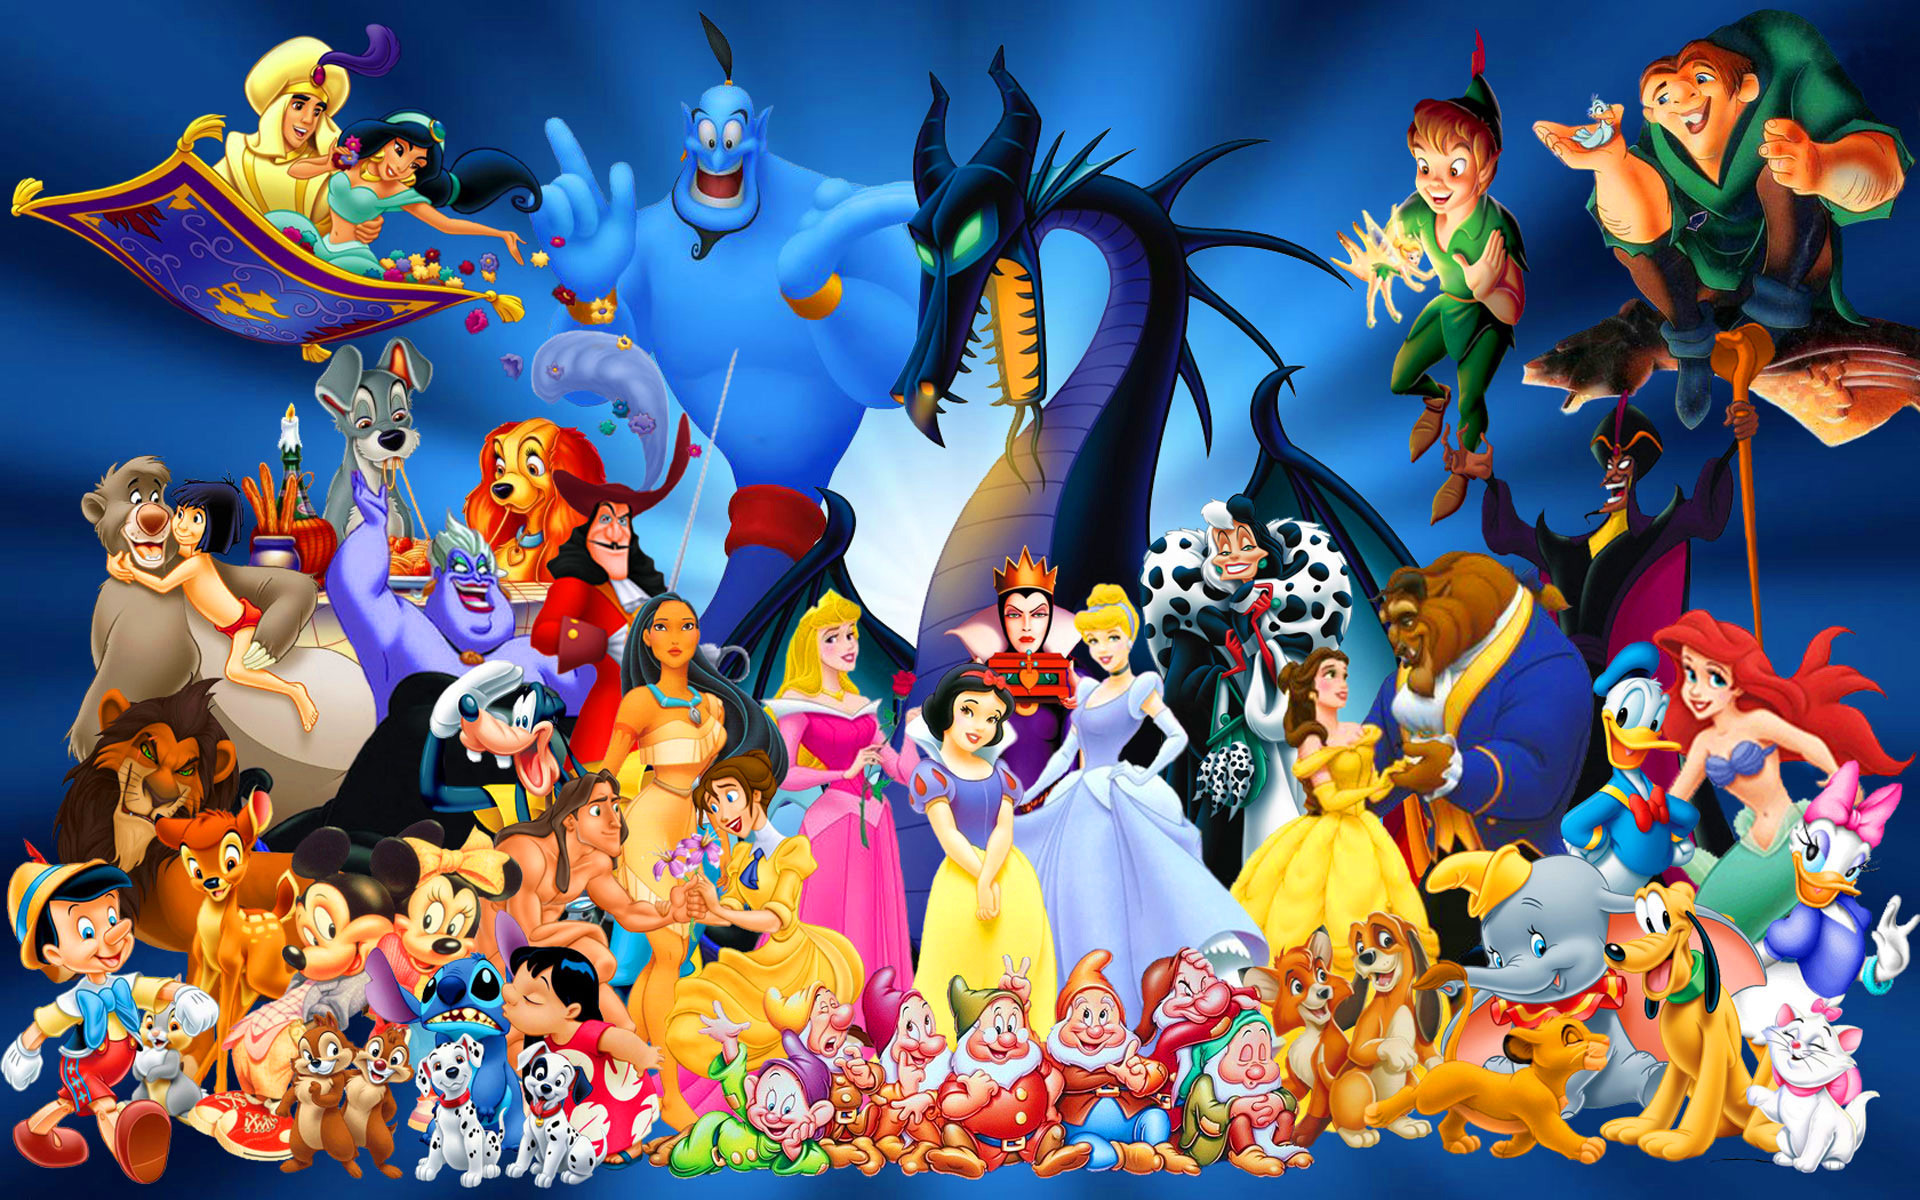 Disney Wallpaper for Computer 56 images 1920x1200